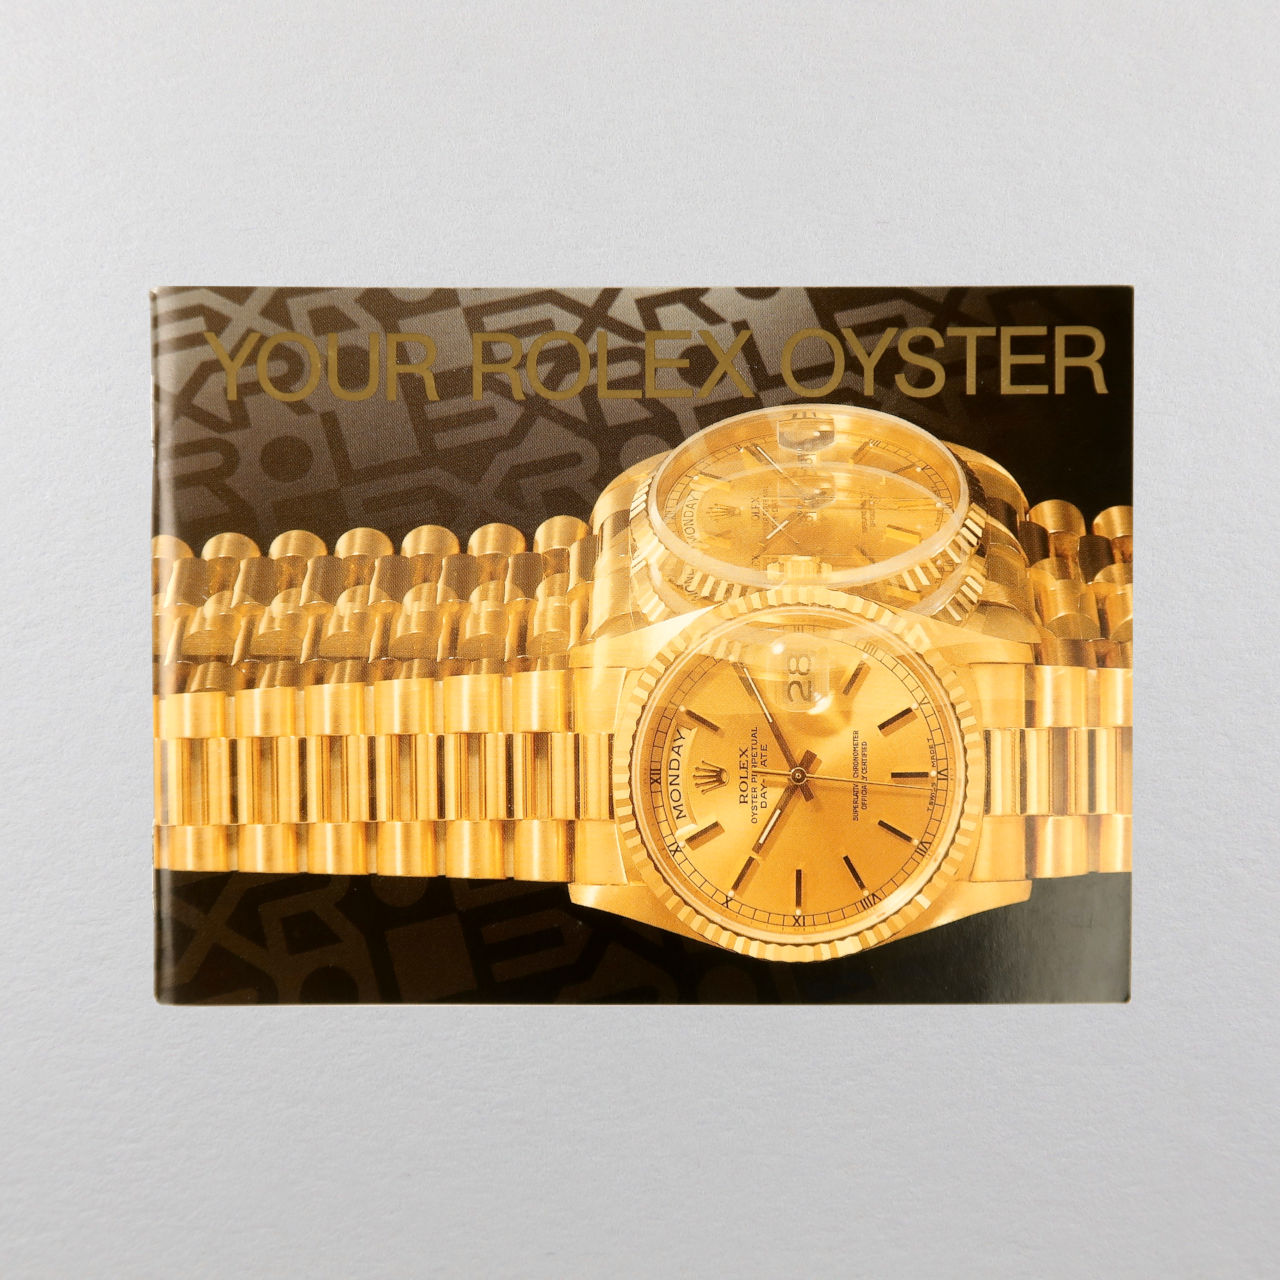 Rolex Oyster booklet